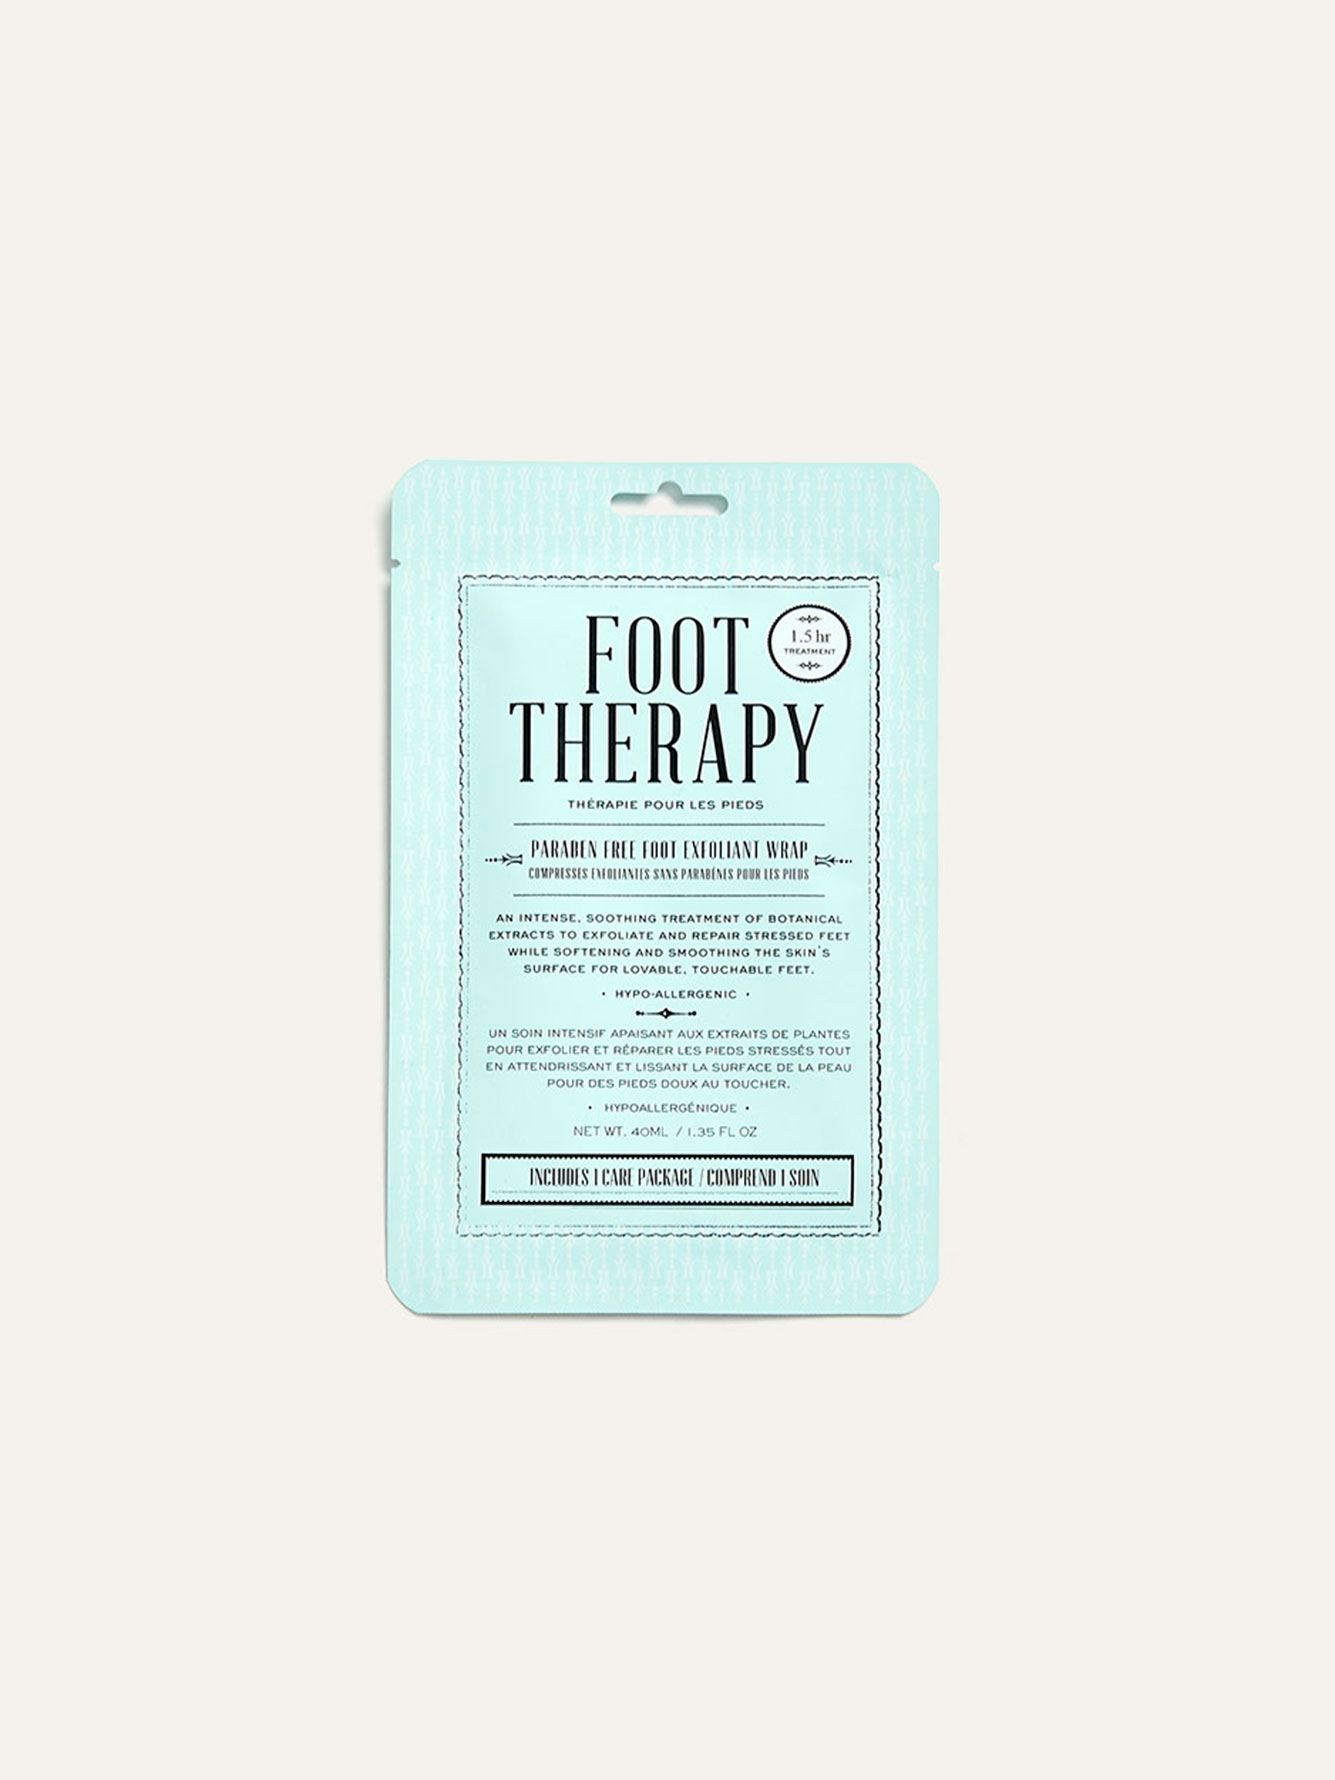 Foot Therapy Exfoliating Mask - Kocostar